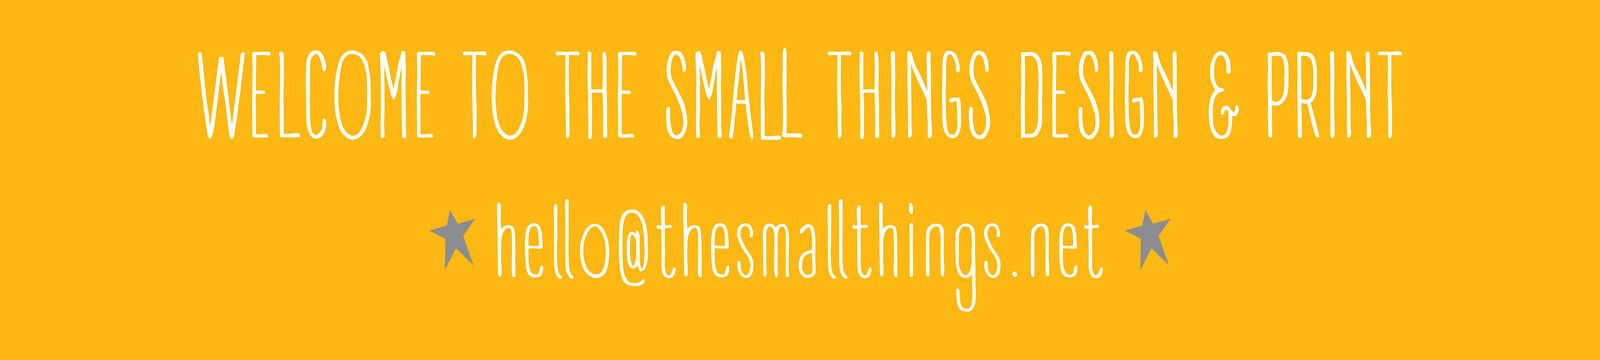 thesmallthingsdesign